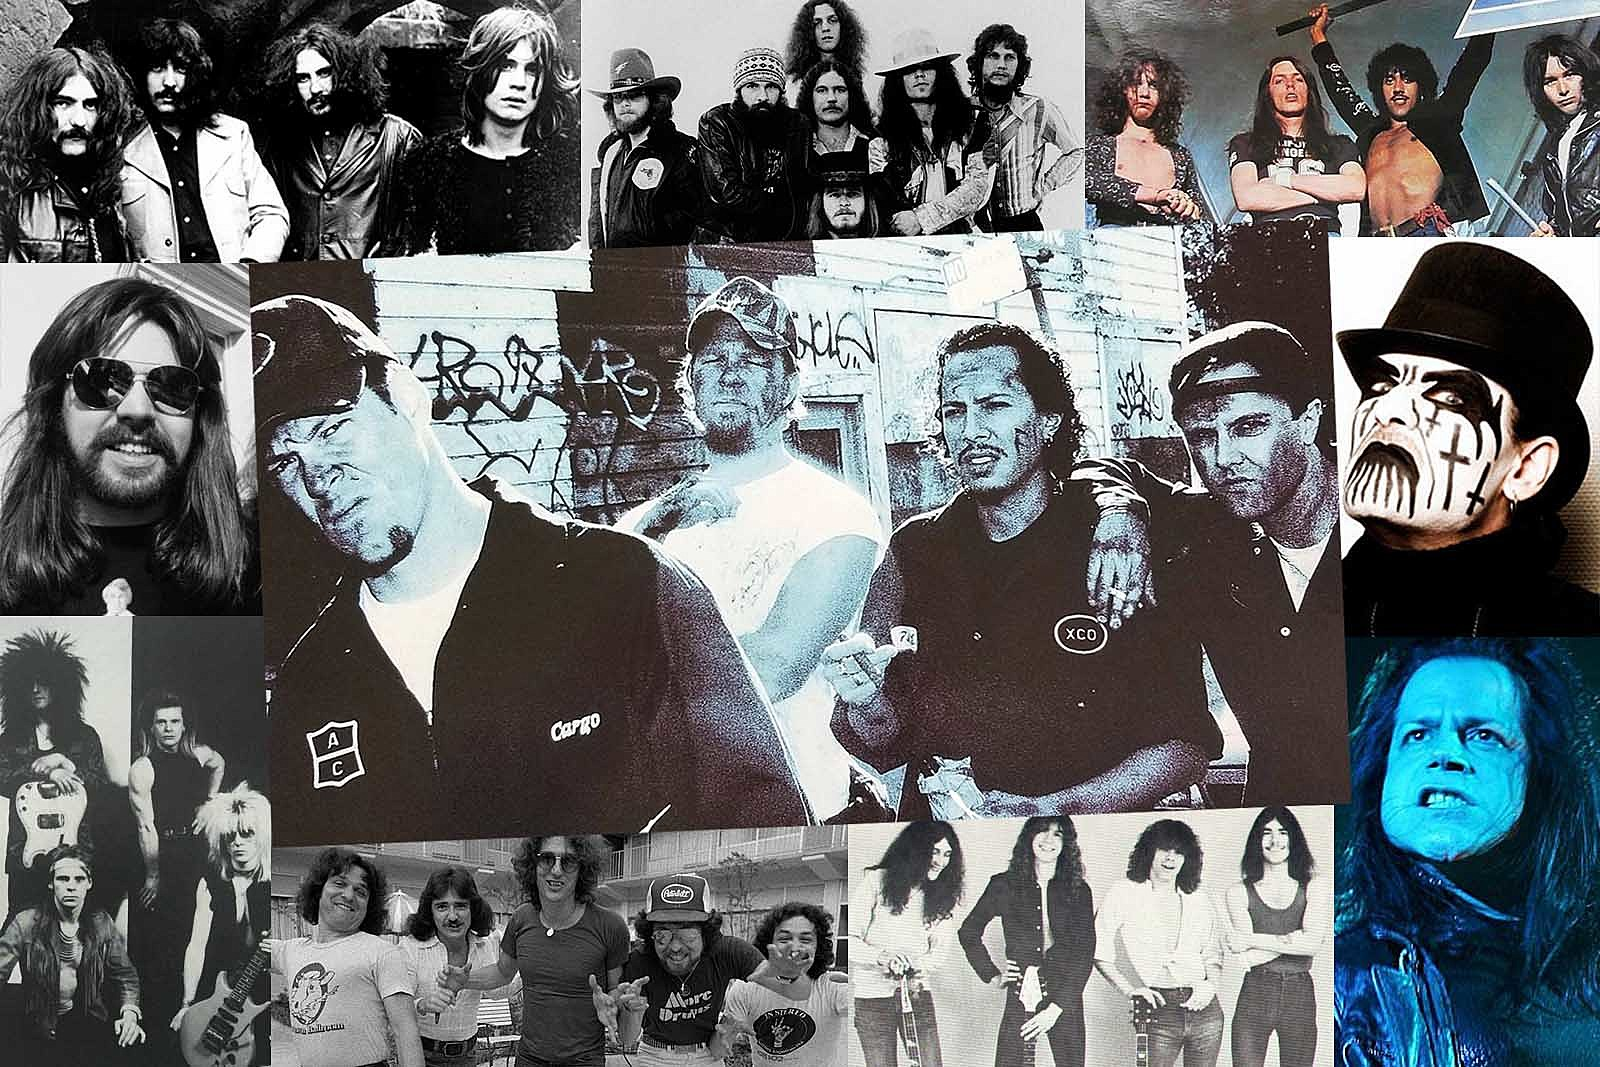 Metallica Effect How Garage Inc Affected Bands They Covered